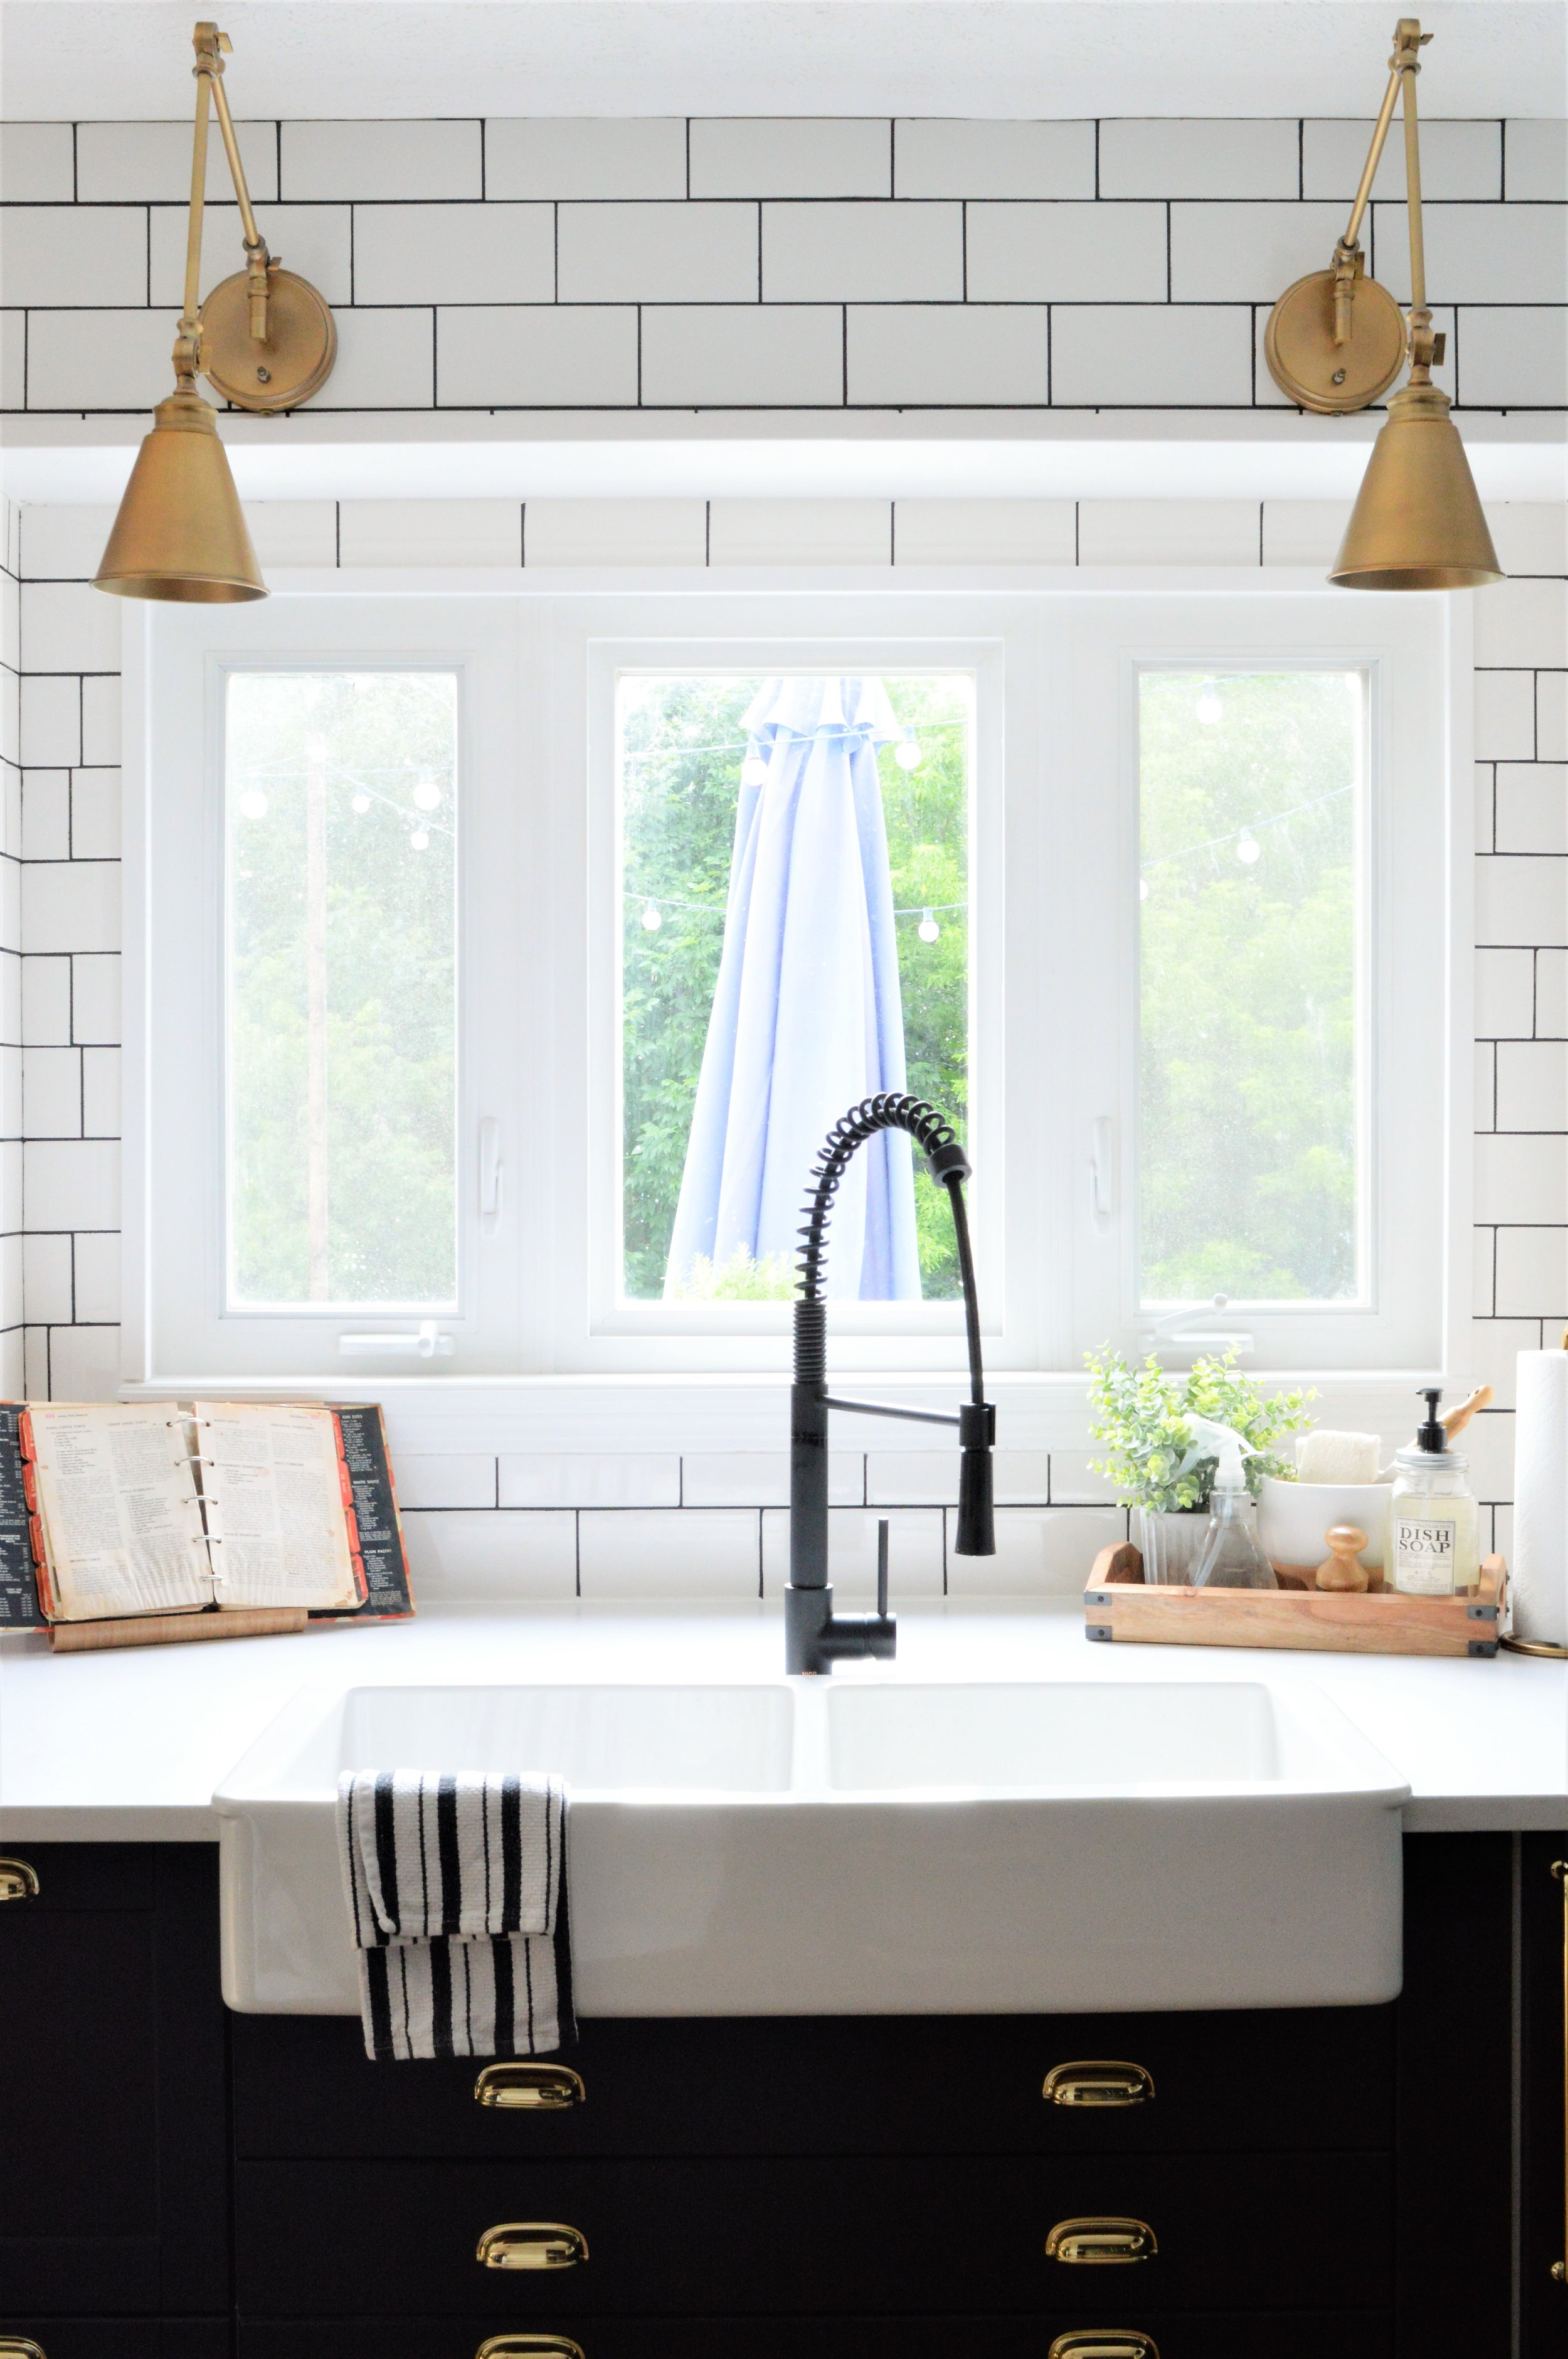 Kitchen Renovation Builder Grade To Custom Modern Farmhouse Design The Other Side Of Neutral